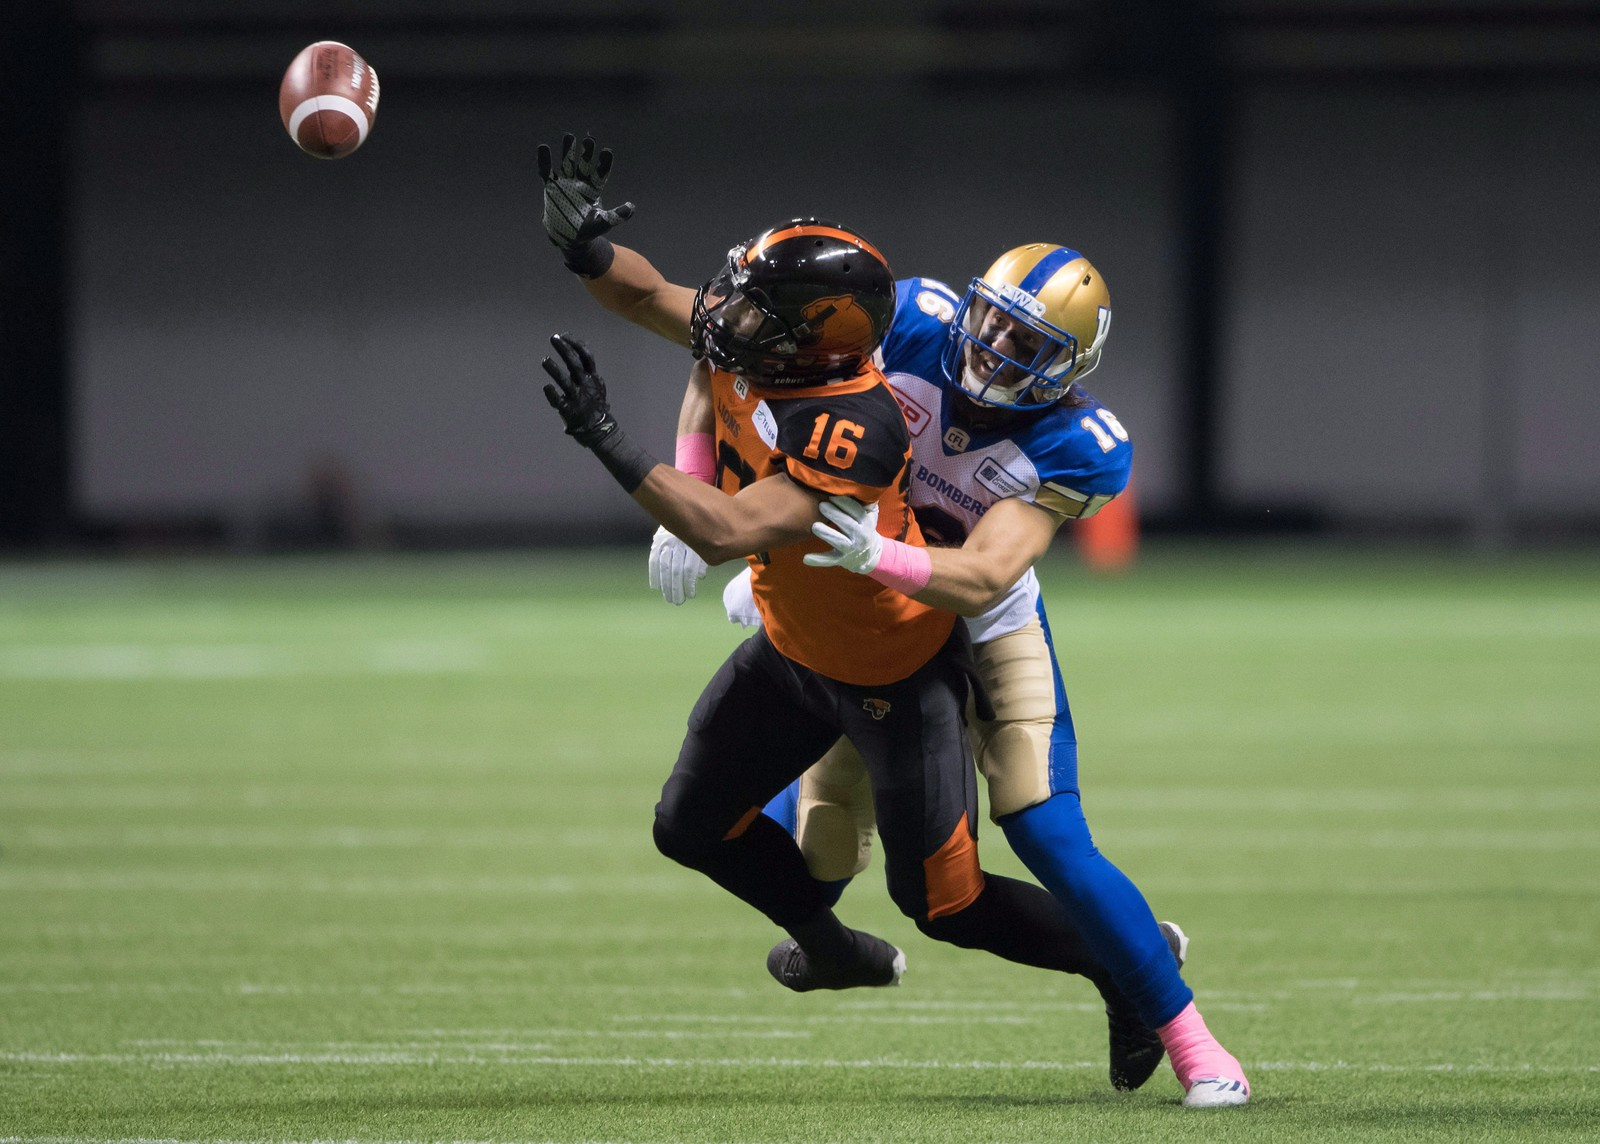 B.C. Lions' Bryan Burnham, left, fails to make the reception as Winnipeg Blue Bombers' Taylor Loffler defends during the first half of a CFL football game in Vancouver, B.C., on Friday October 14, 2016. THE CANADIAN PRESS/Darryl Dyck